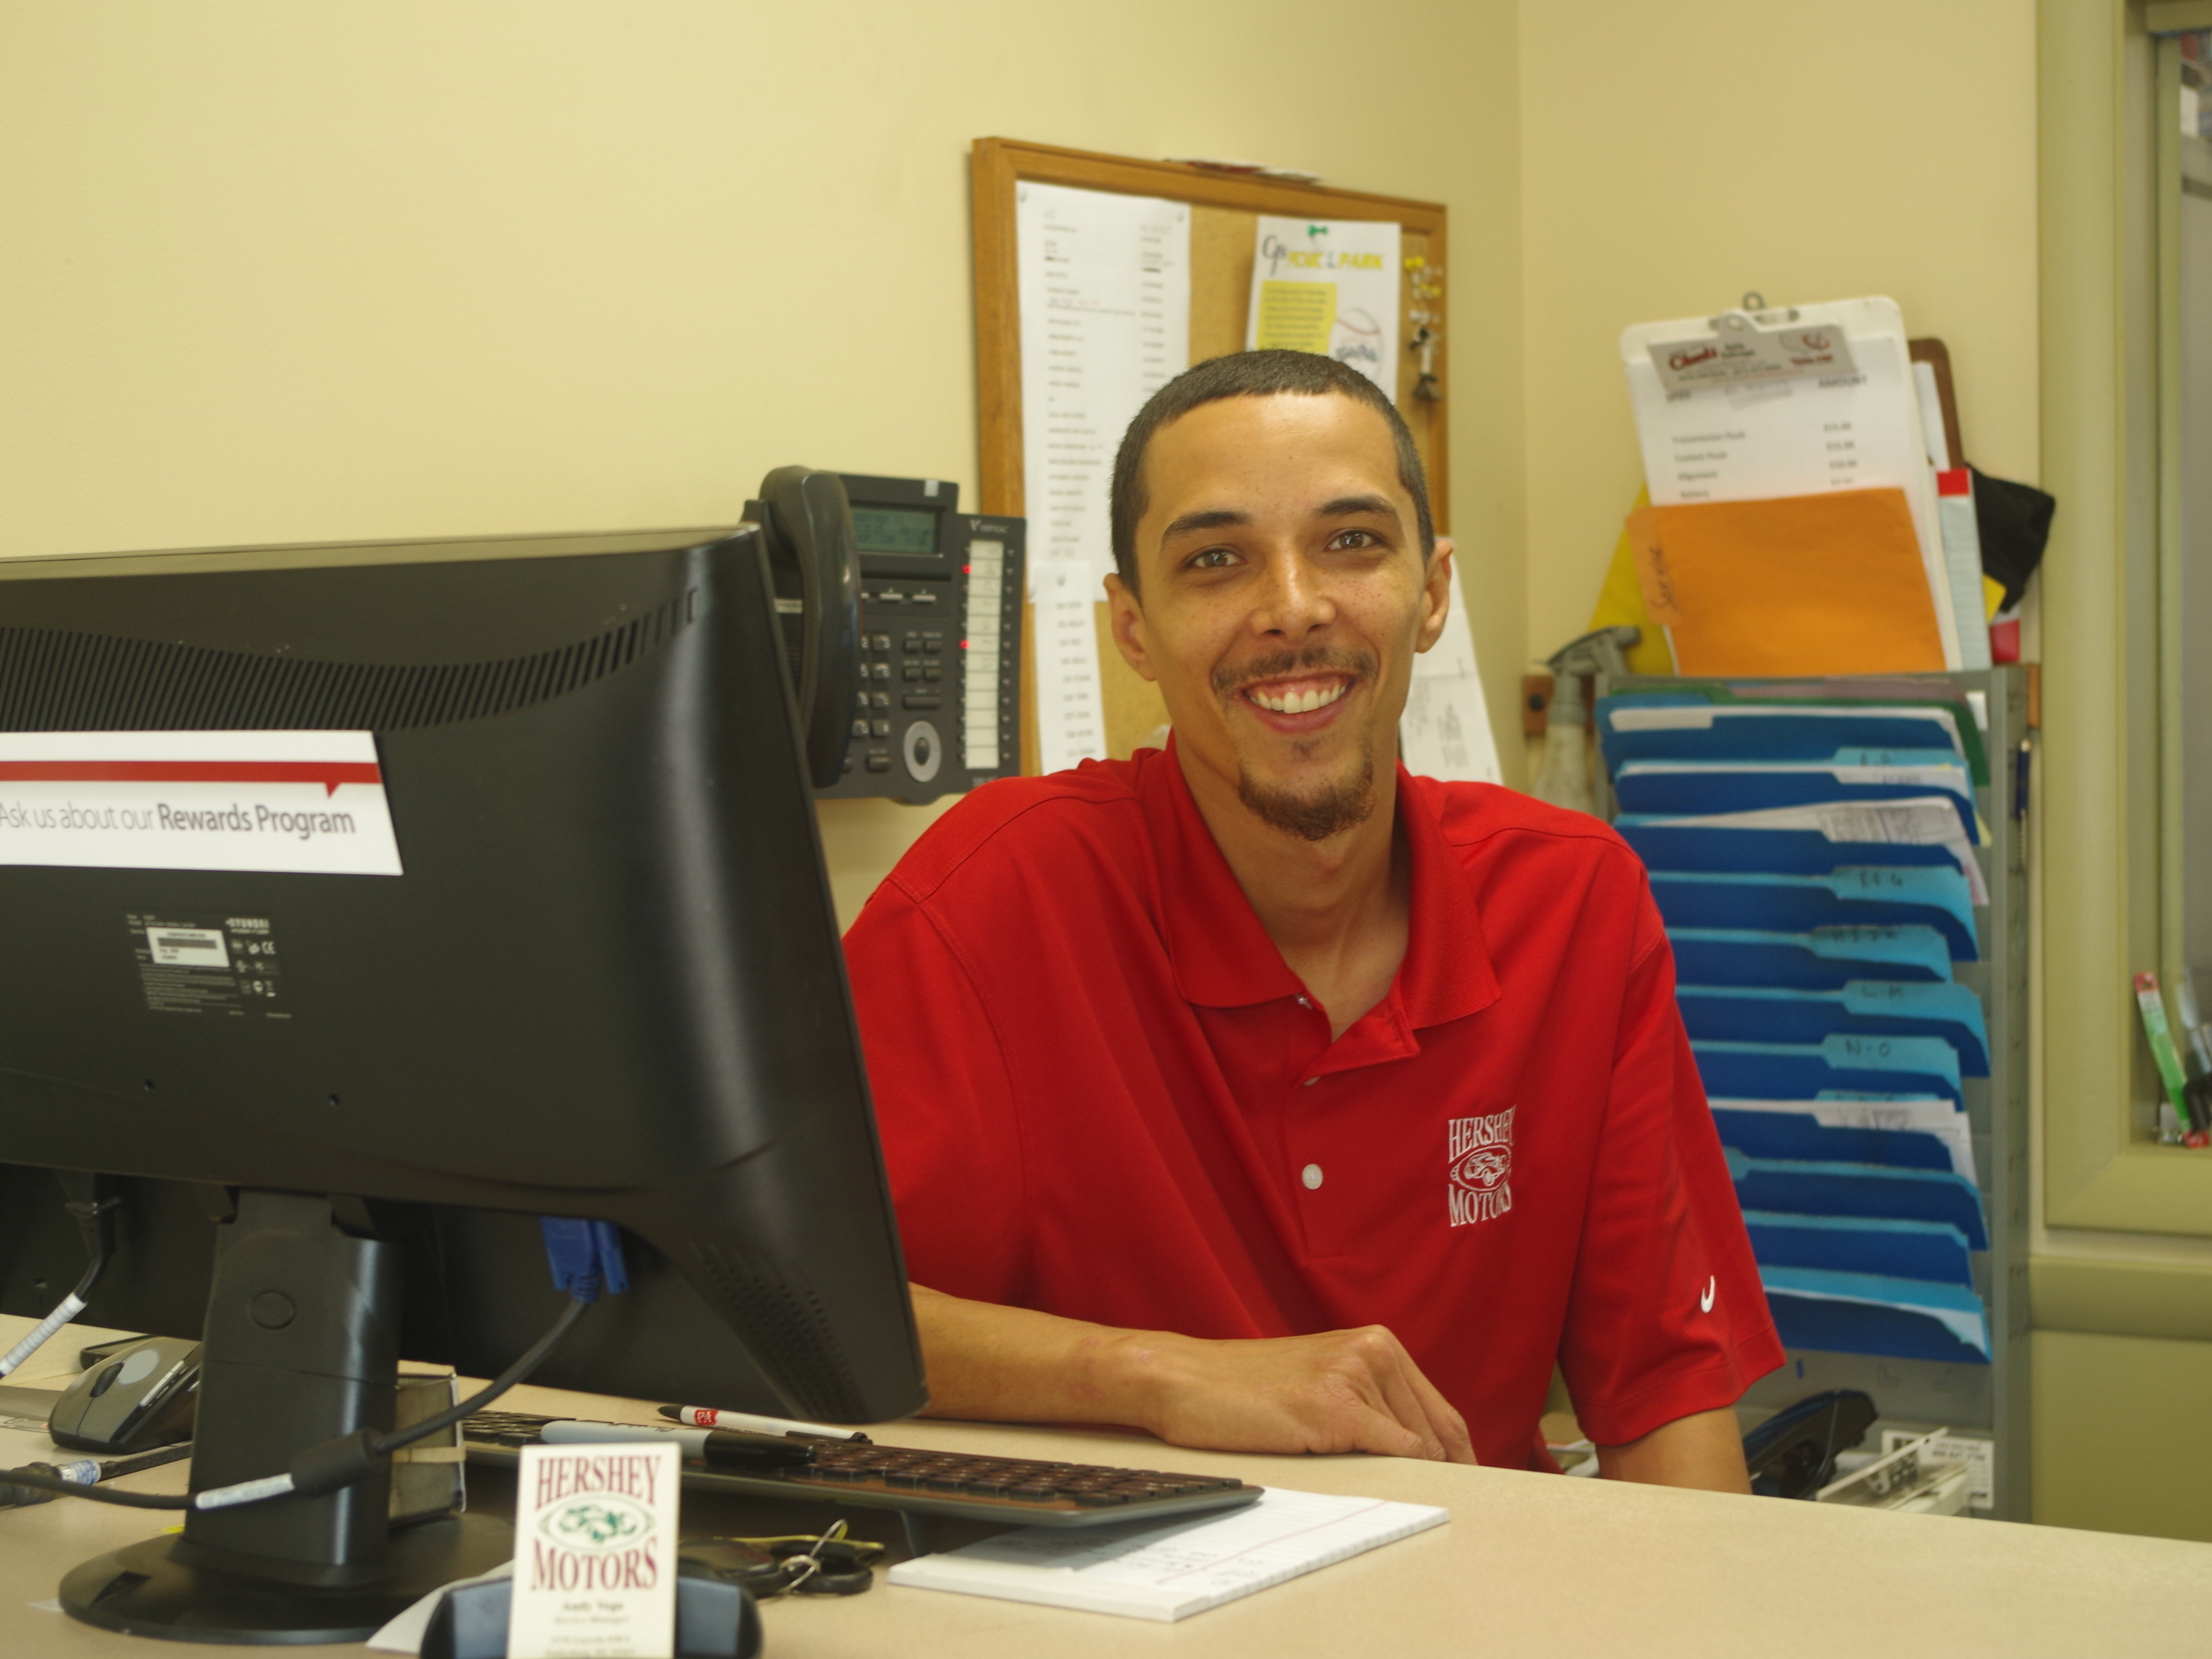 Andy Vega - Service Manager